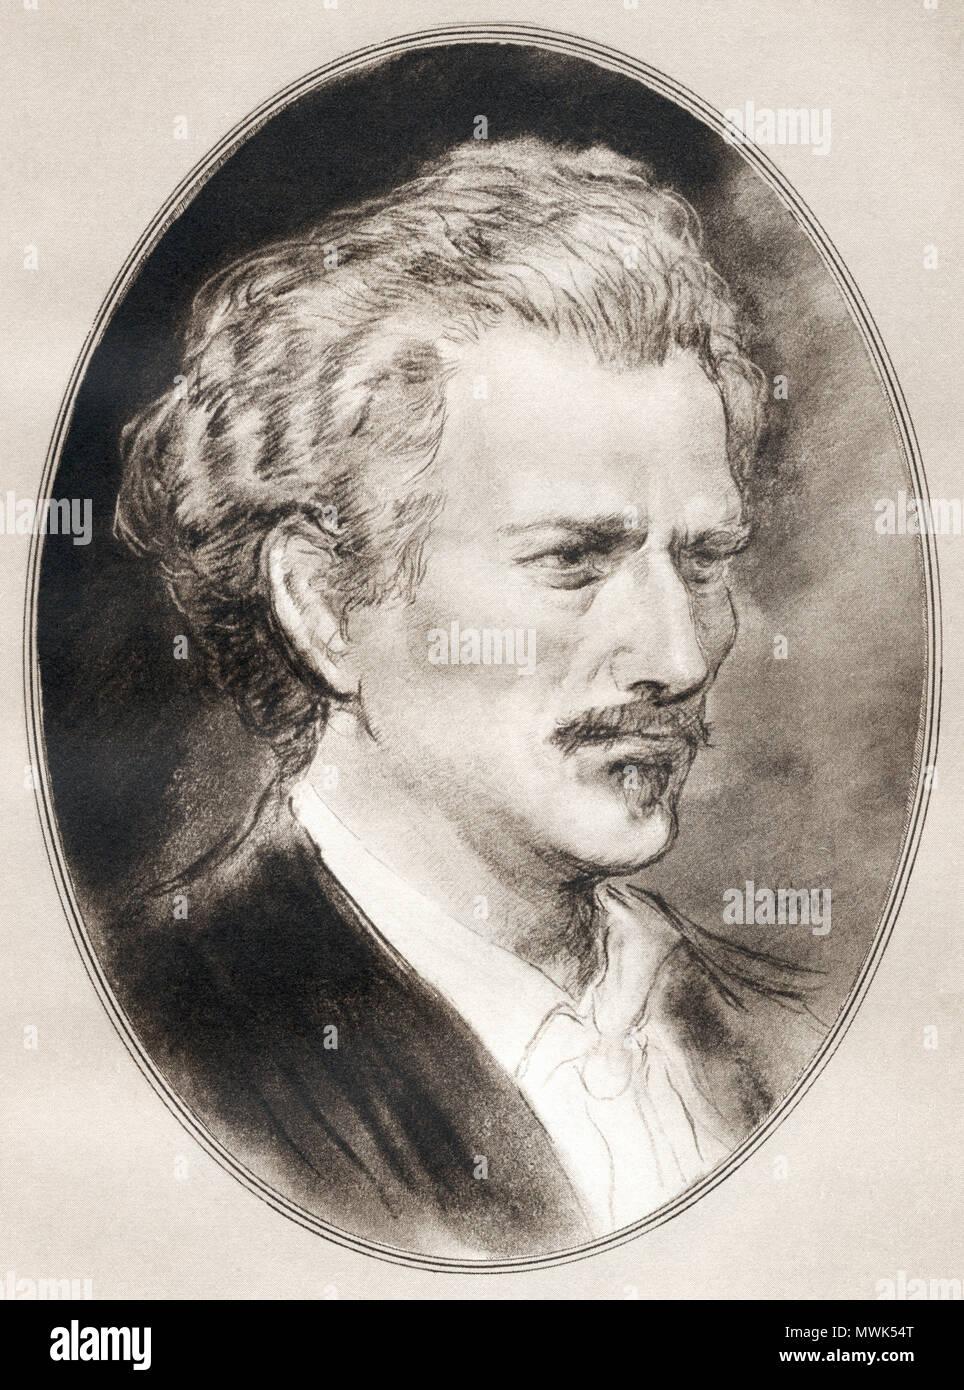 Ignacy Jan Paderewski, 1860 –  1941.  Polish pianist and composer, politician, statesman and spokesman for Polish independence.  Illustration by Gordon Ross, American artist and illustrator (1873-1946), from Living Biographies of Famous Men. - Stock Image